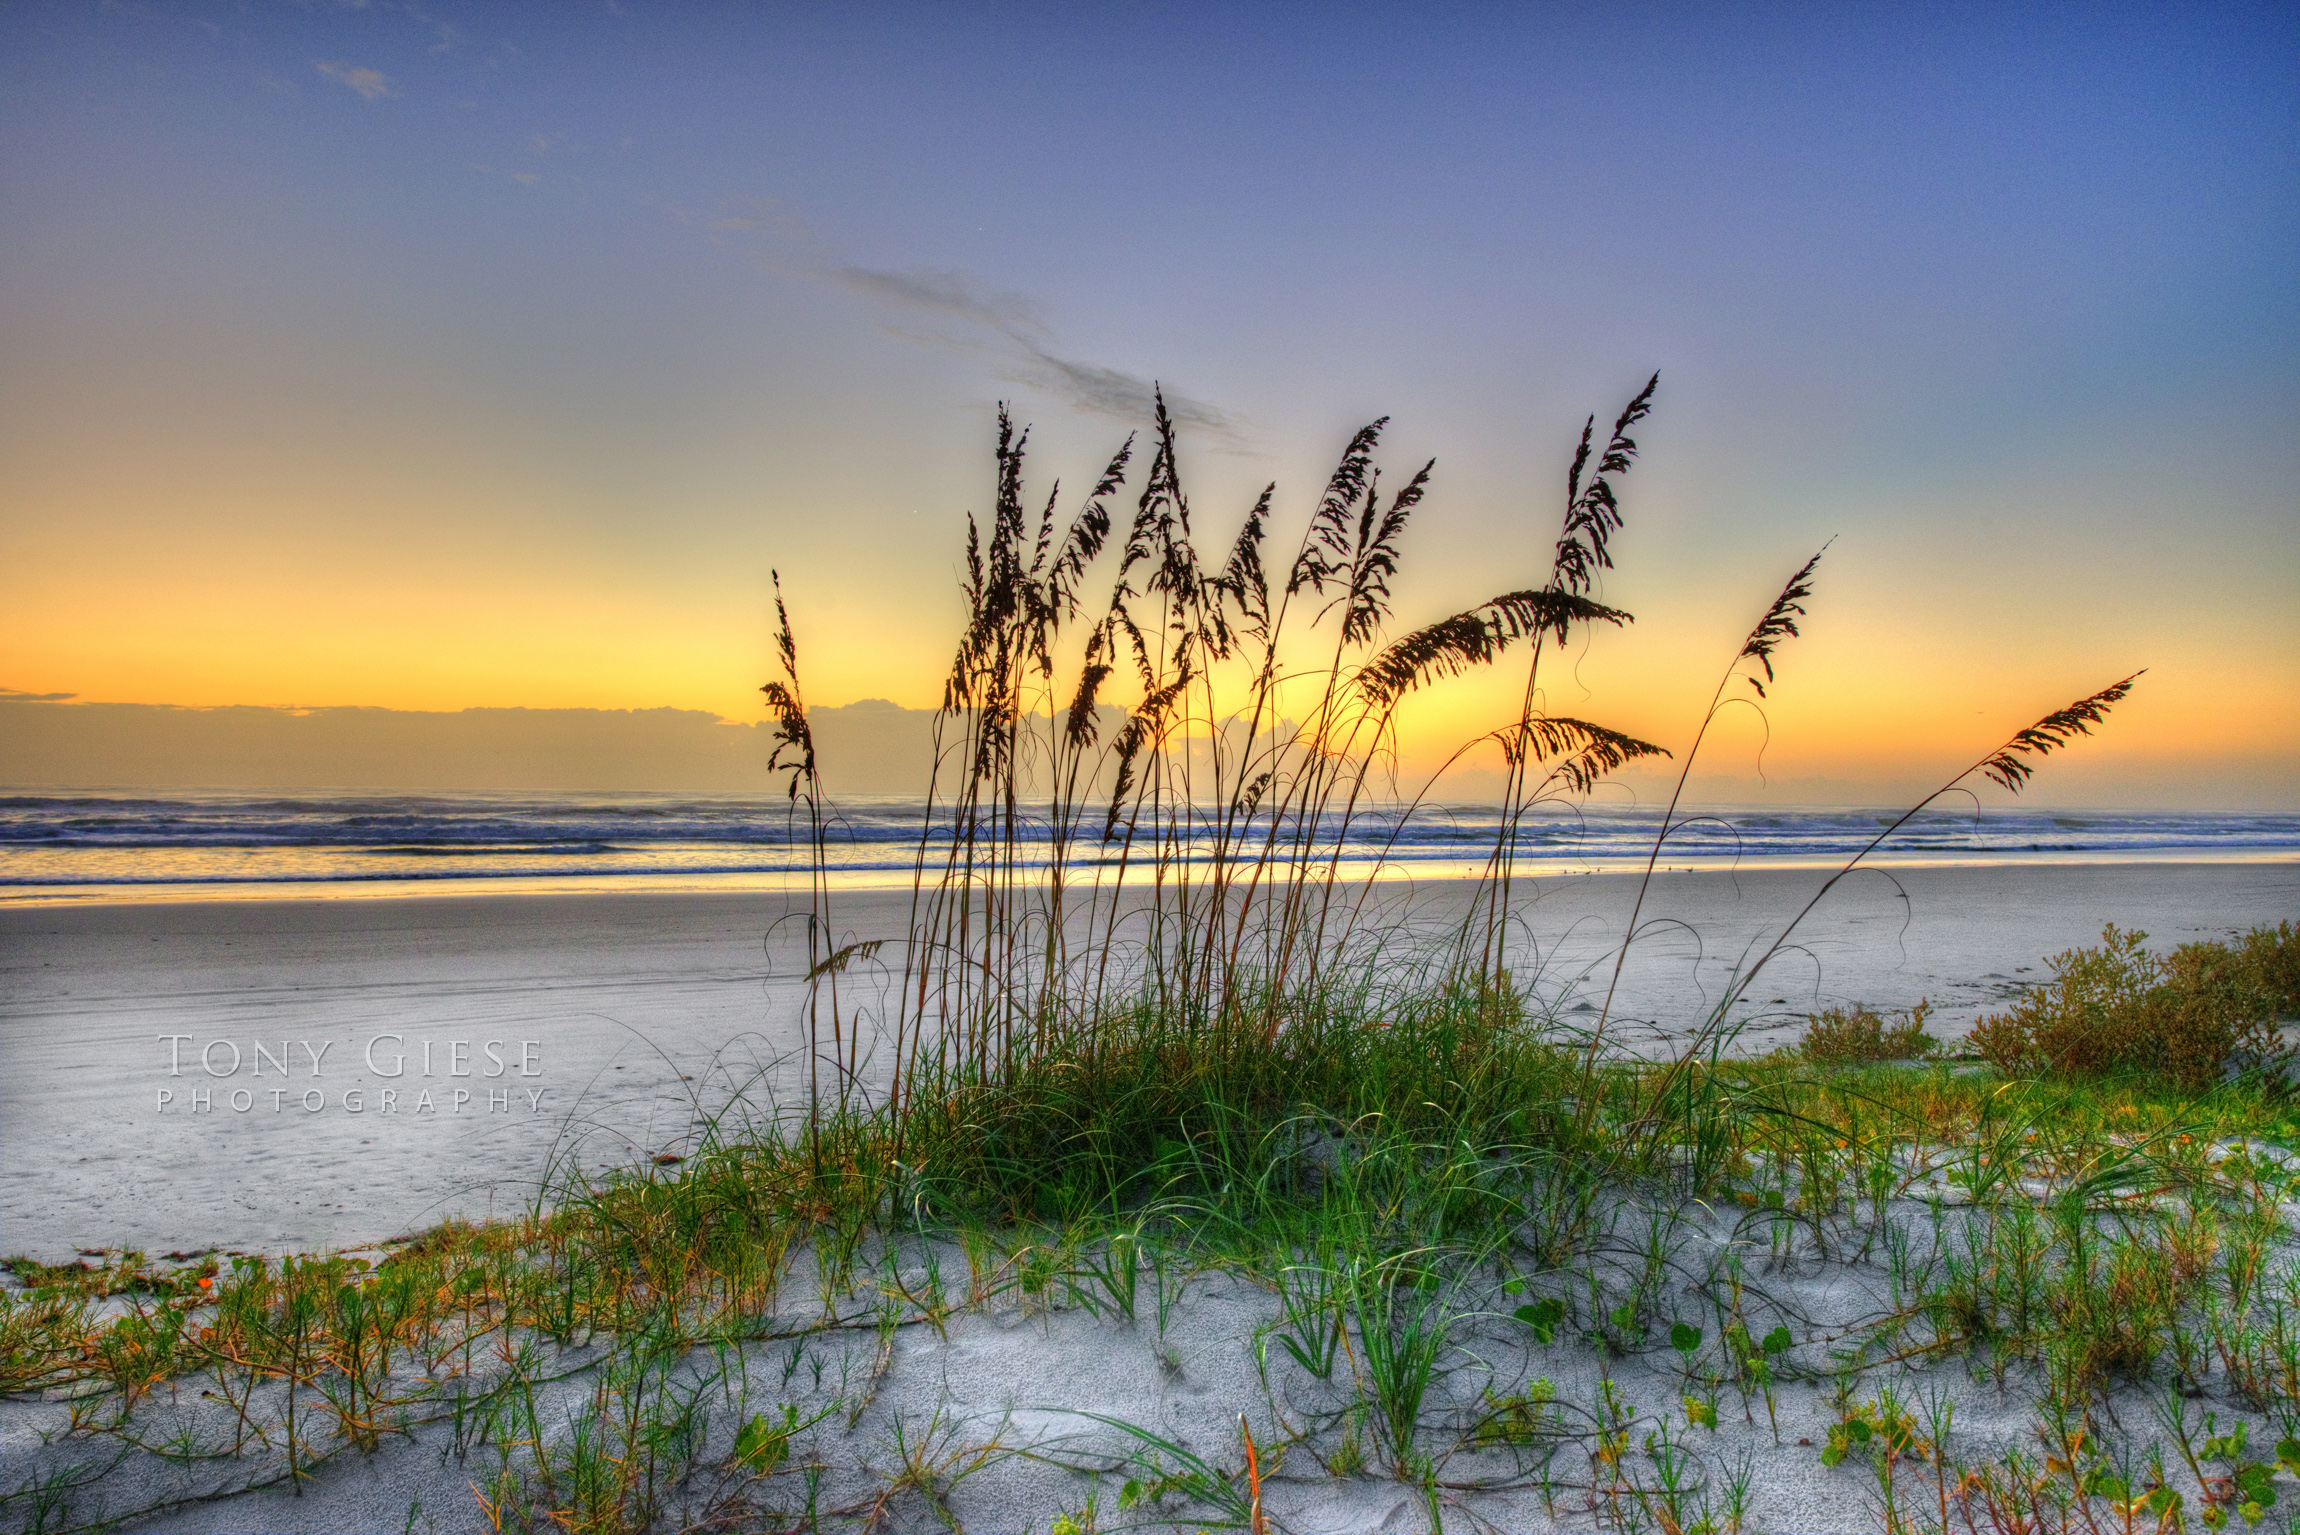 Florida beaches have a symbol, it's the sea oat. Photography by Tony Giese.